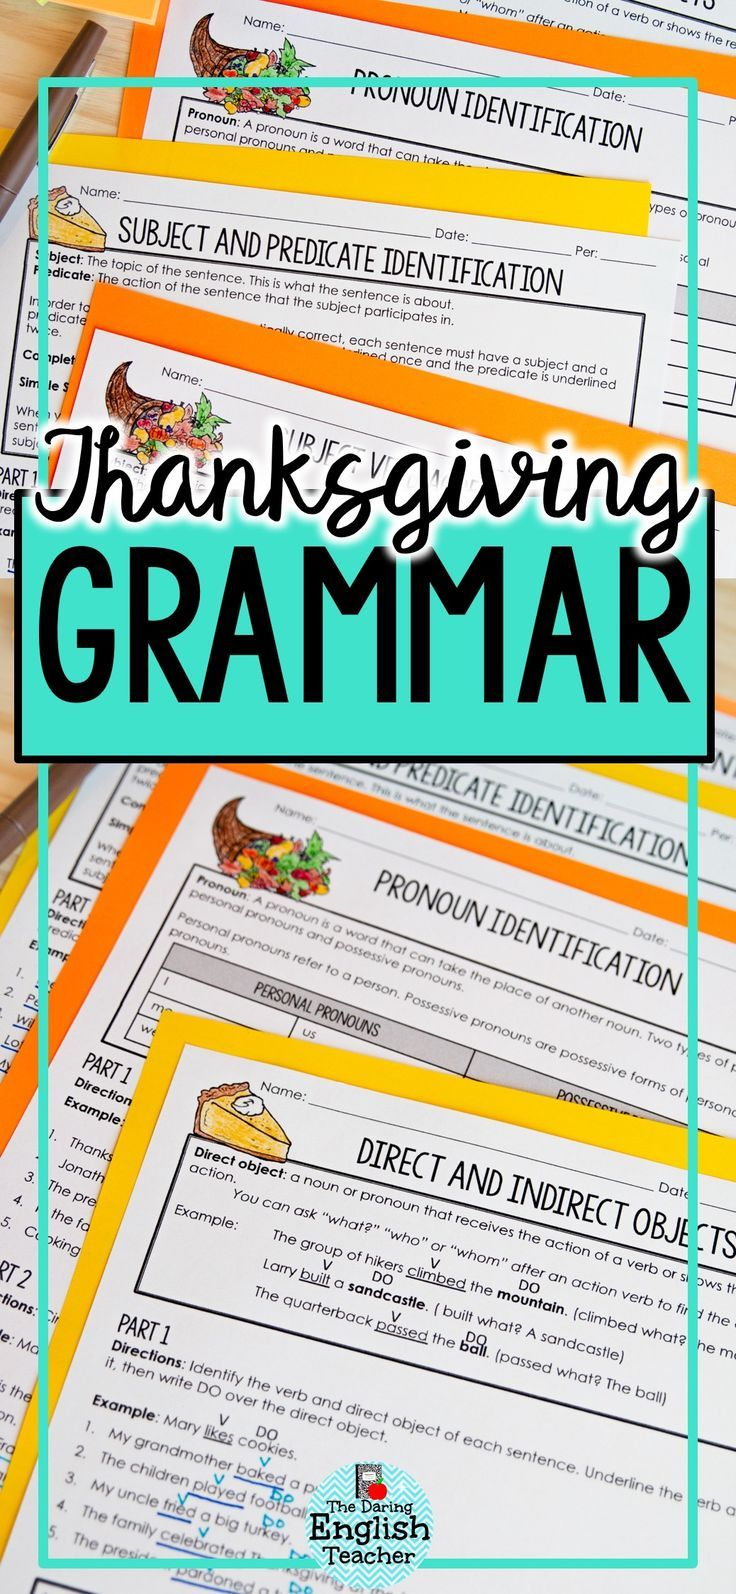 Thanksgiving Themed Grammar Worksheets   Middle School Language Arts ...